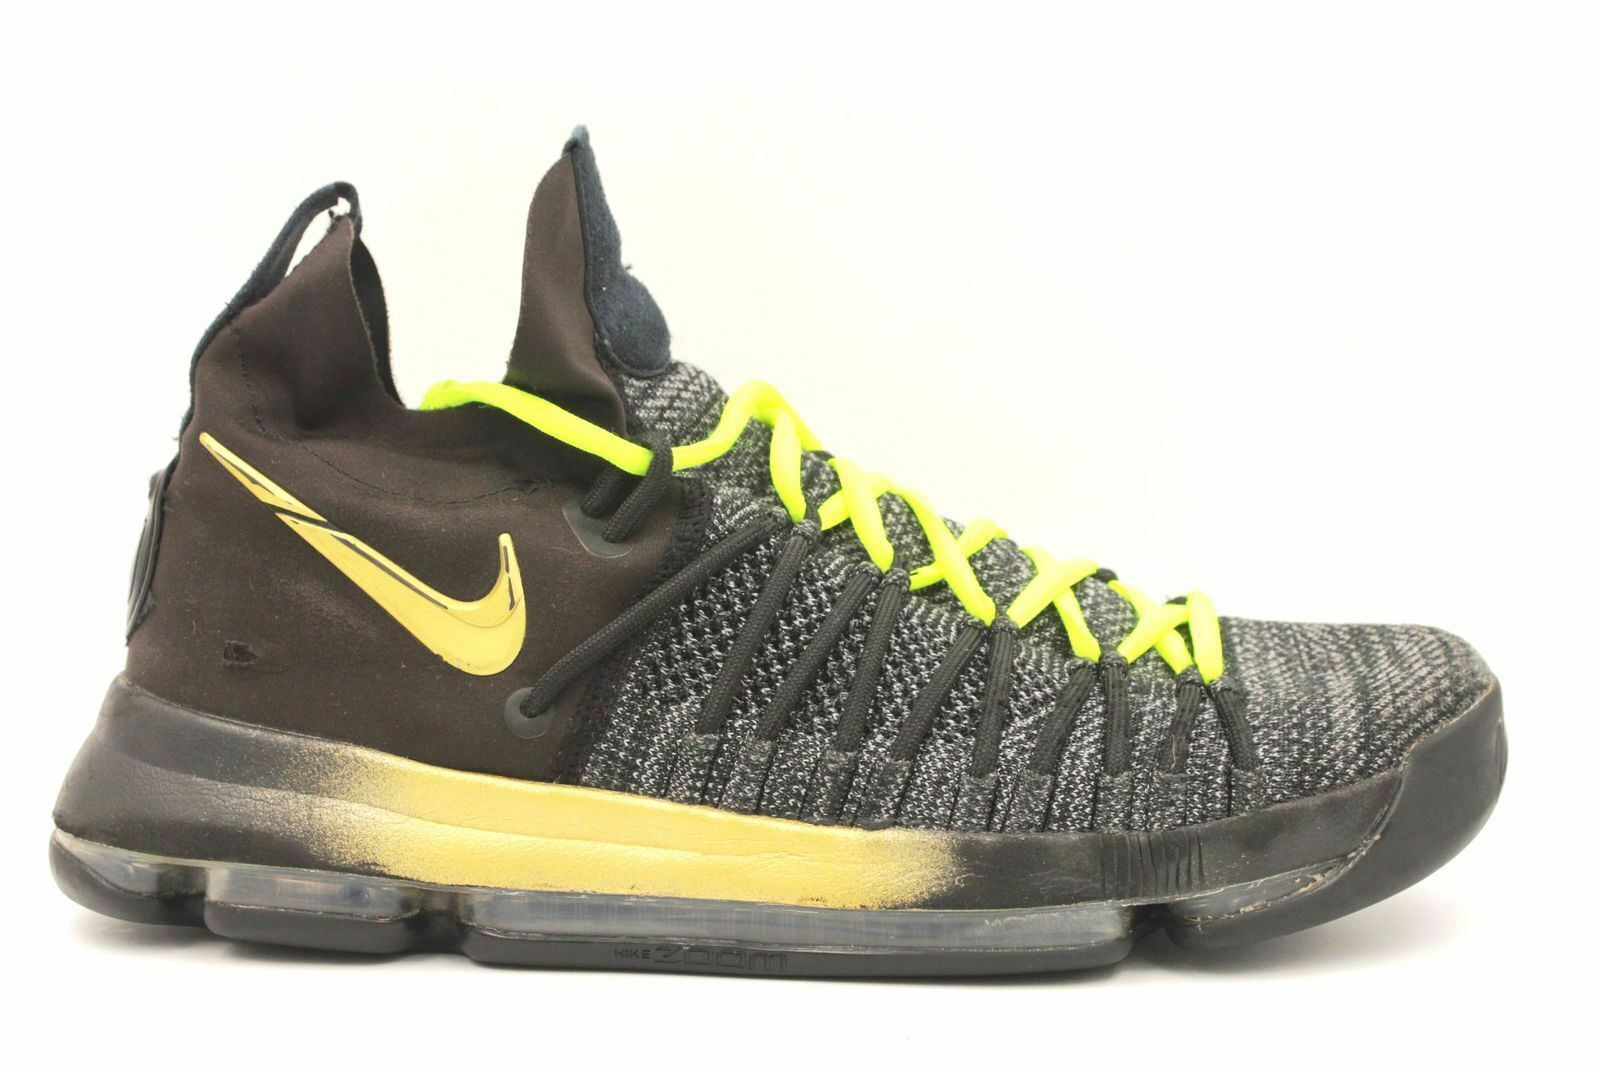 online store 48667 4cefa NIKE Zoom KD9 Elite Elite Elite Men Basketball Shoes Size 11 Black  878637-007 5ce34d